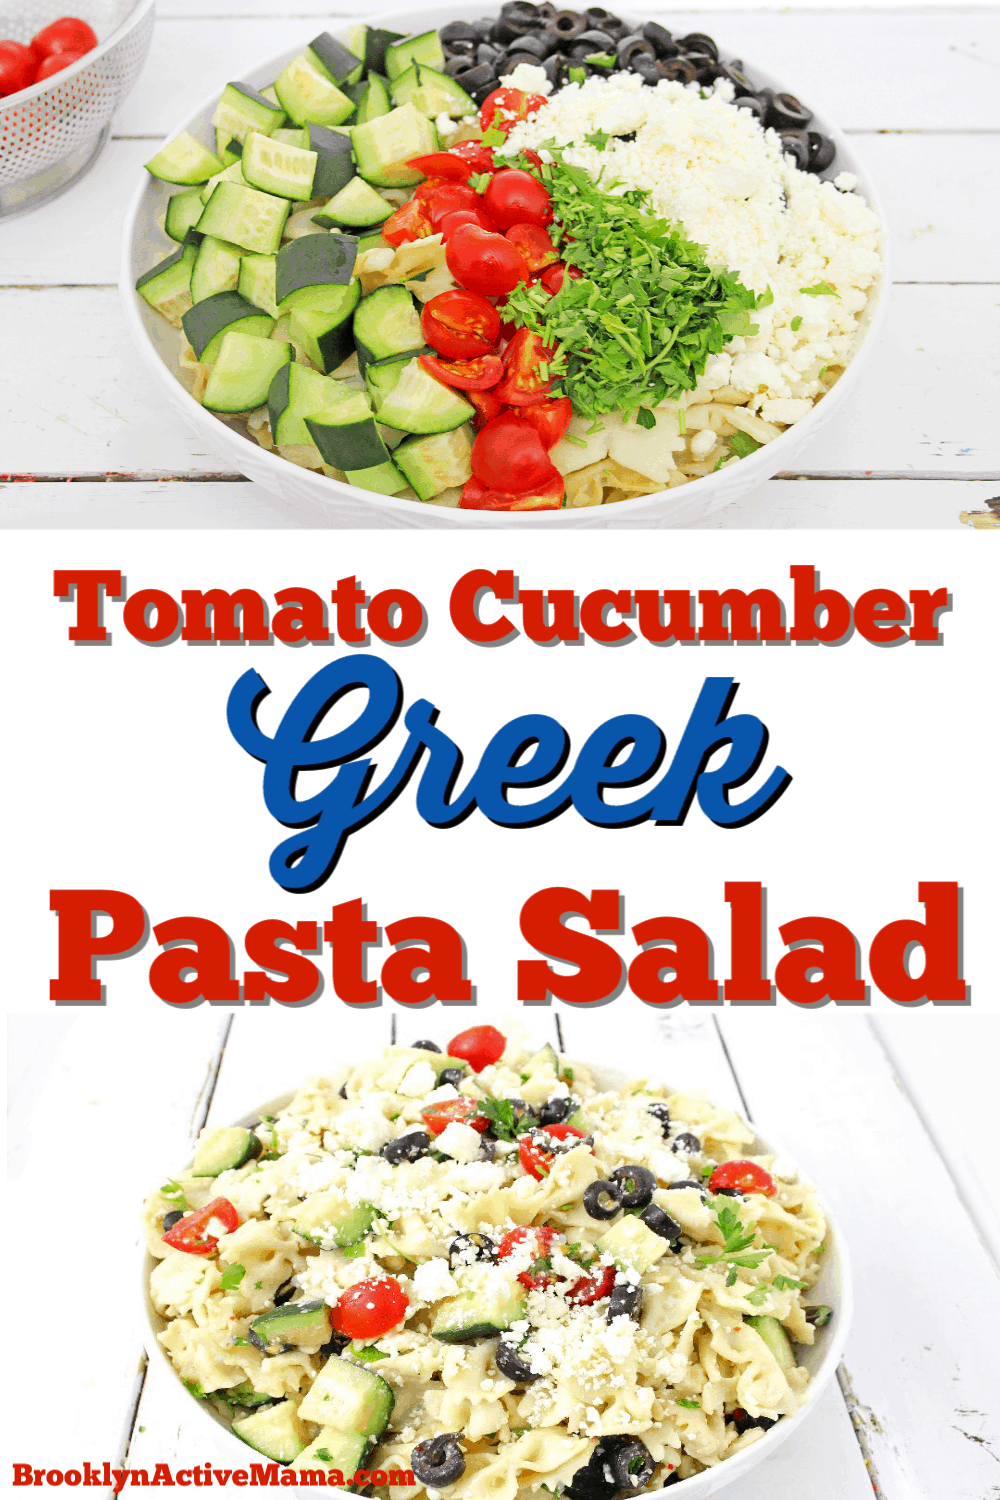 Check out this pretty amazing Tomato Cucumber Greek Pasta Salad that is perfect for any summer soiree (or any time you are in the mood for pasta salad!). Plus I'm sharing some great ideas for summer salads perfect for bbqs and outdoor get togethers. #pastasalad #greeksalad #summerrecipe